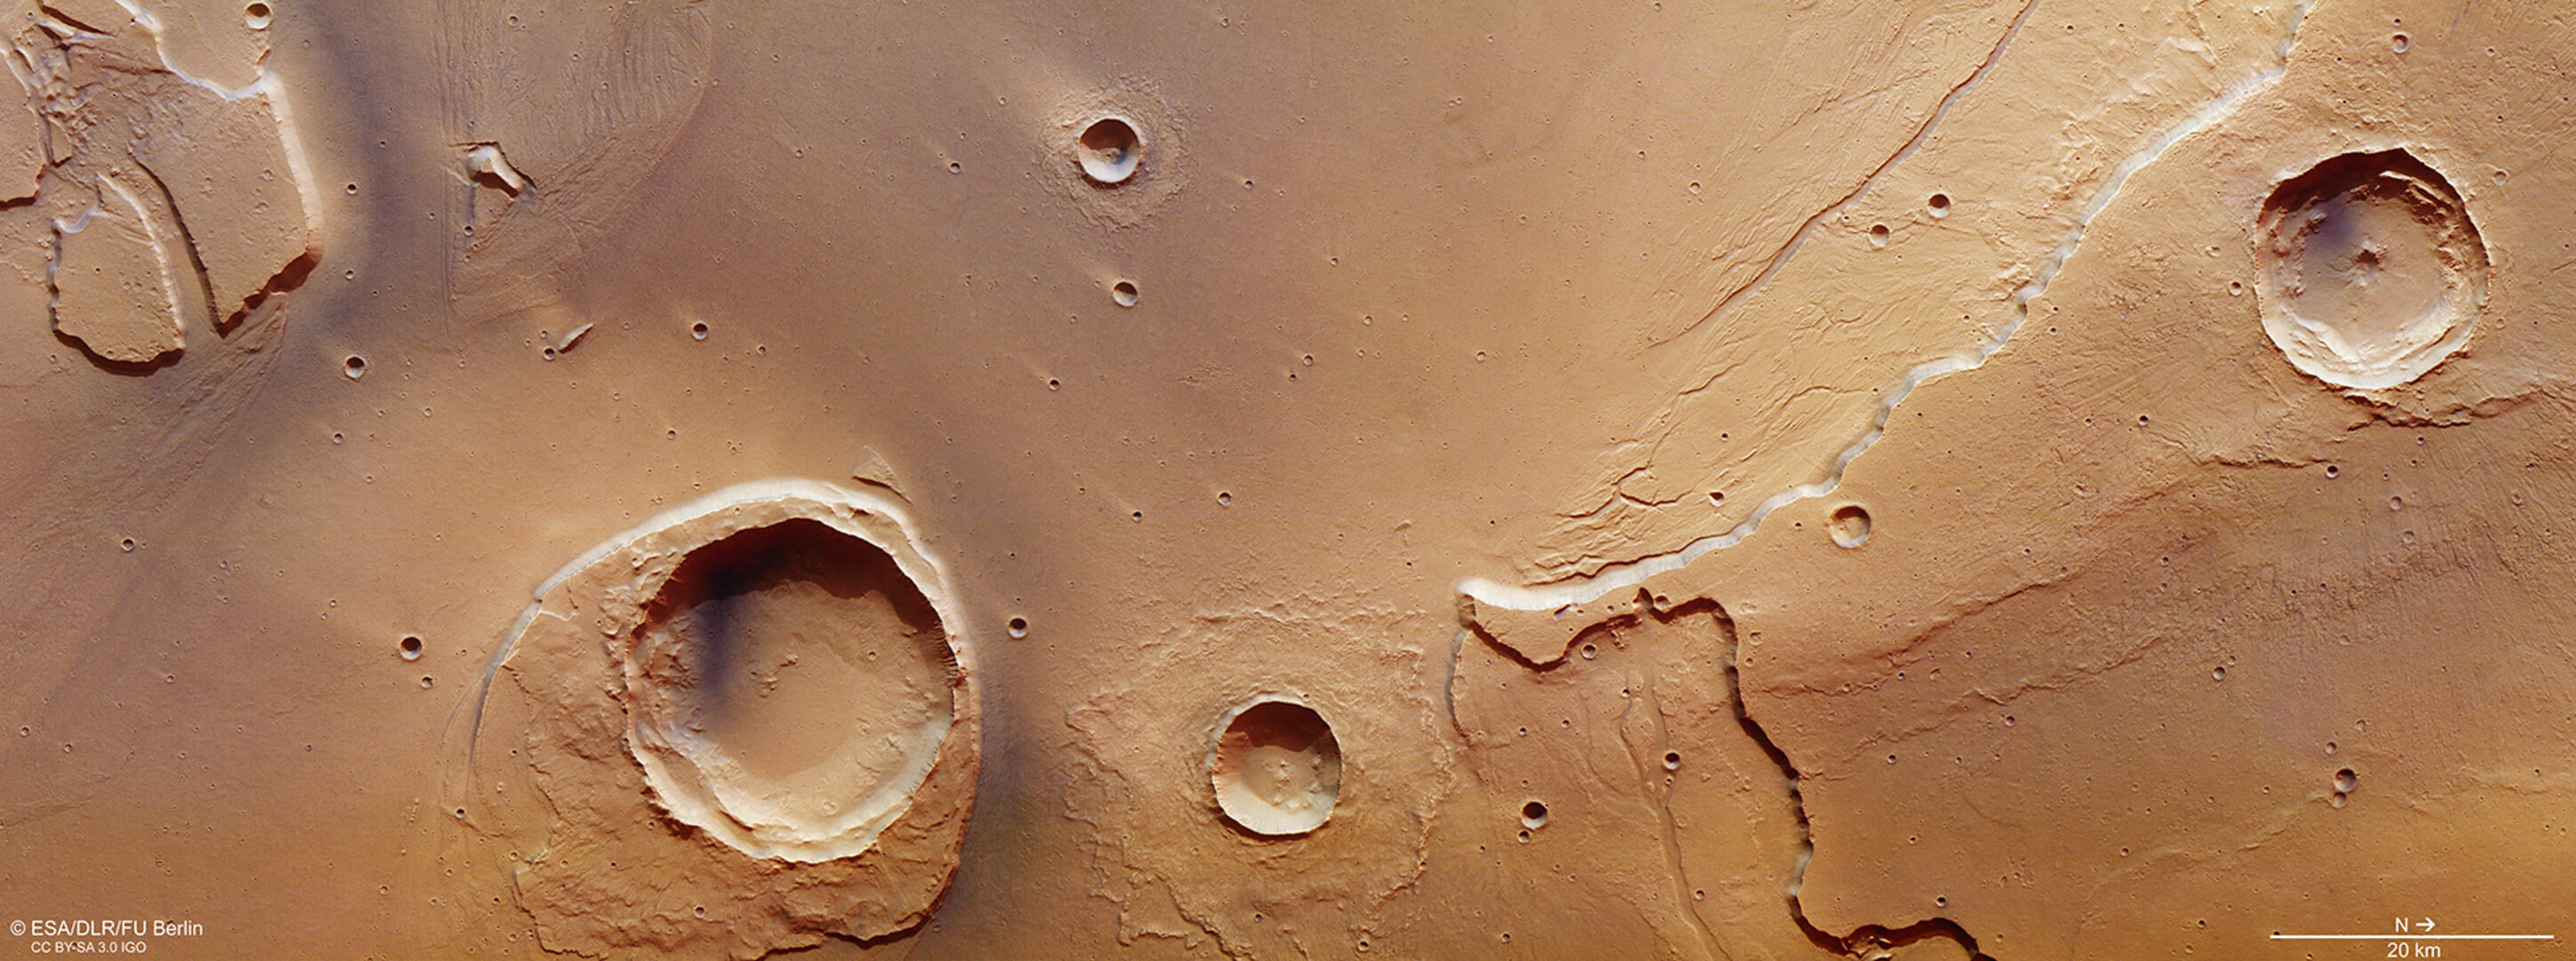 At the mouth of Kasei Valles